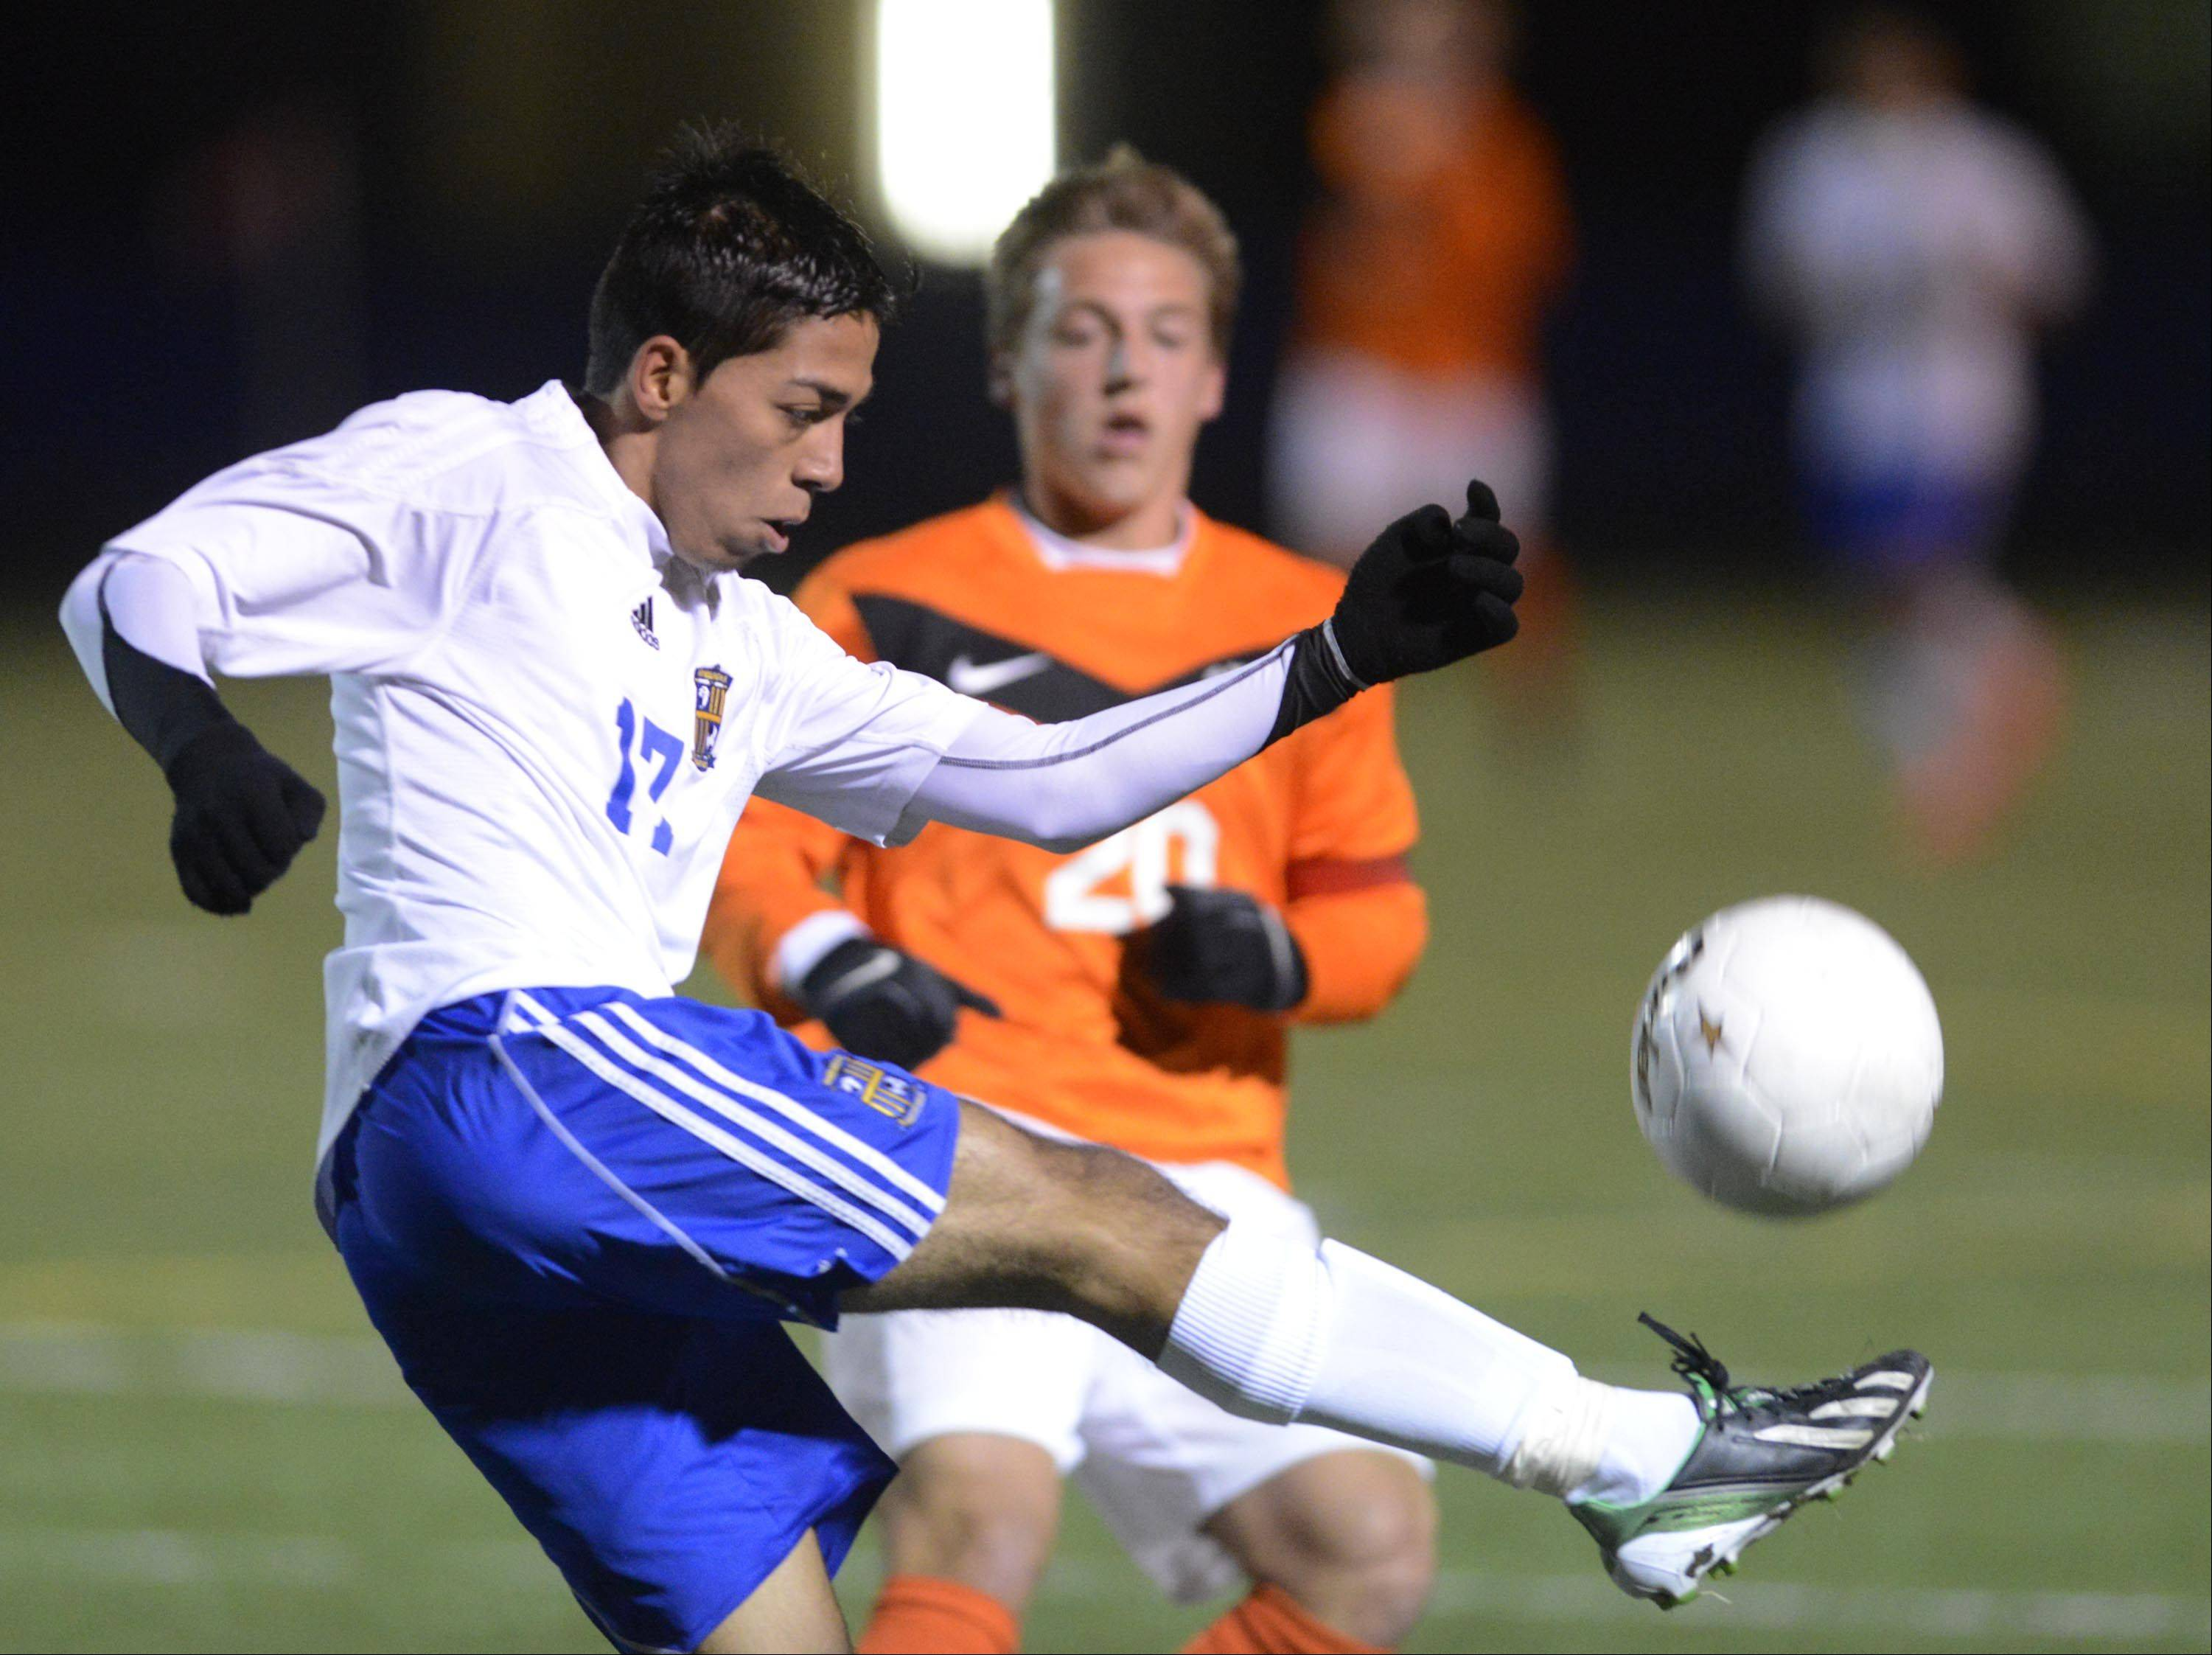 Wheeling's Fabian Acosta advances the ball upfield against Edwardsville in the Class 3A boys soccer state championship game Saturday night in Hoffman Estates.